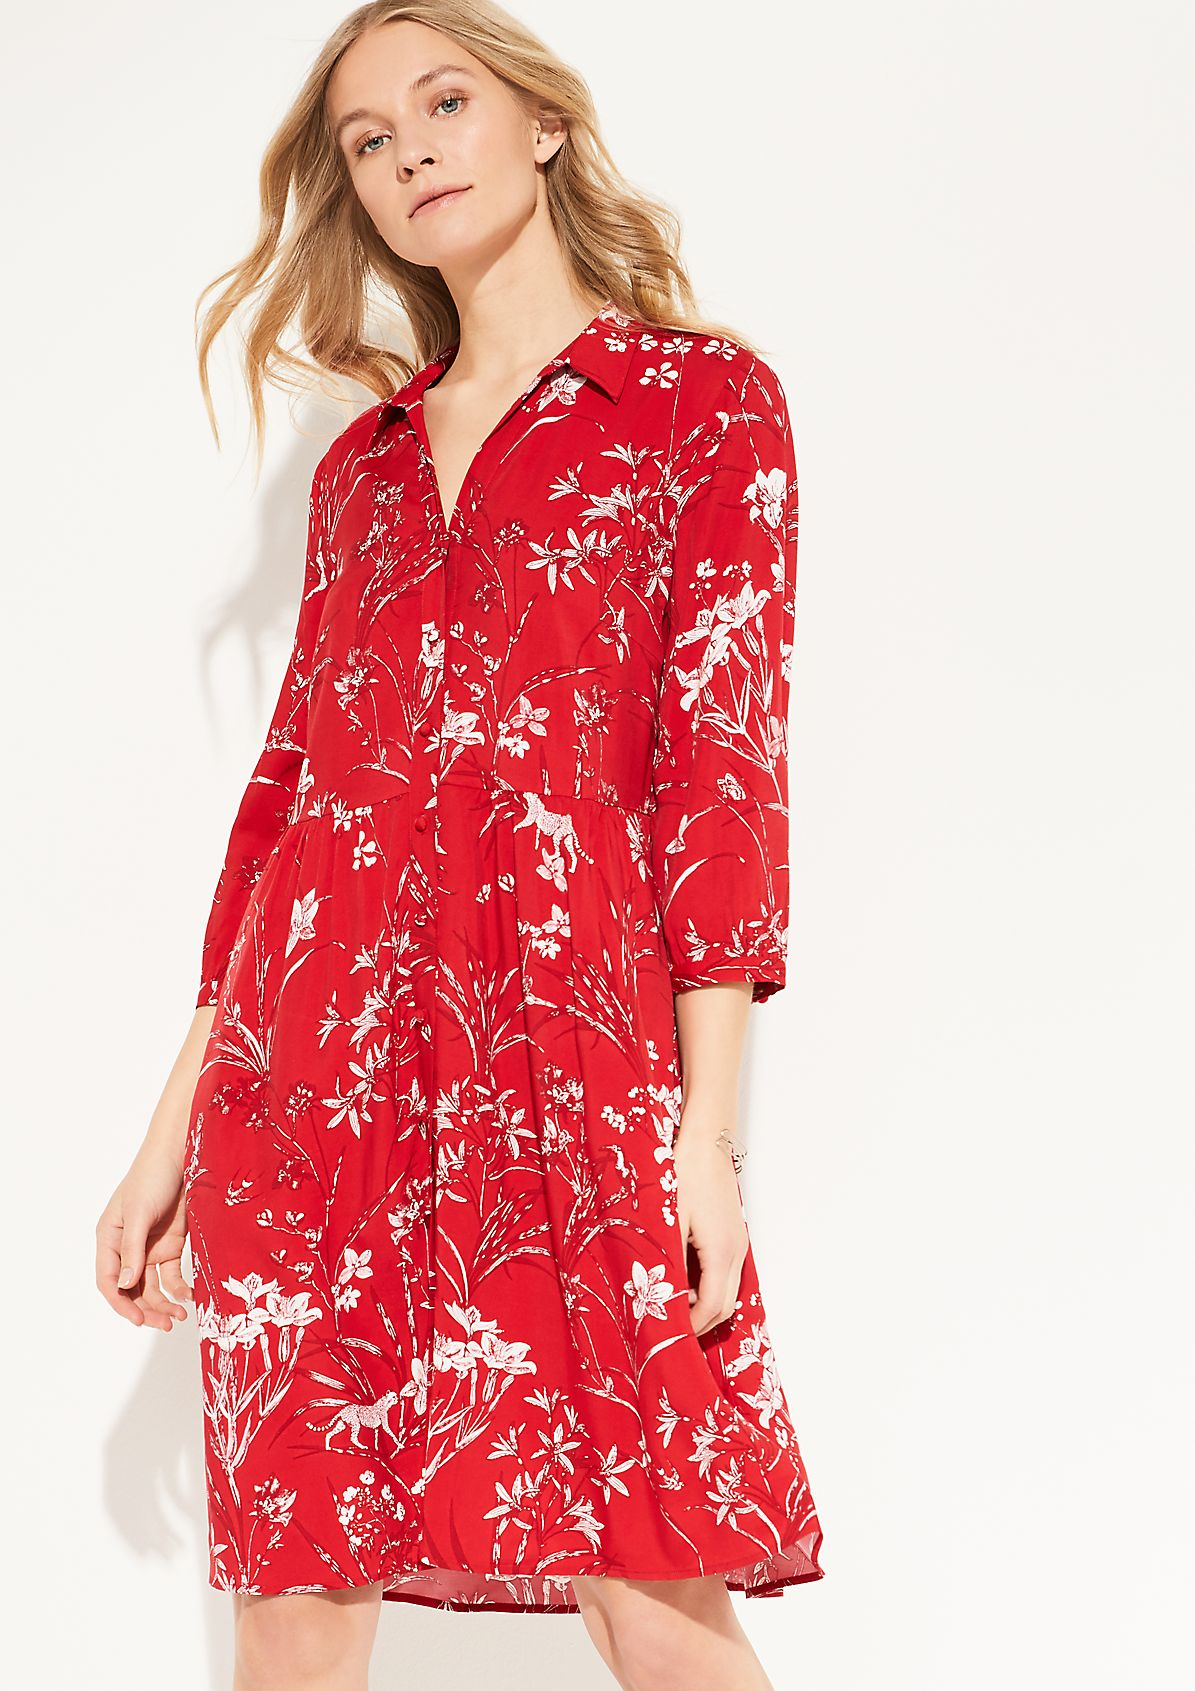 Blouse dress with a printed pattern from comma